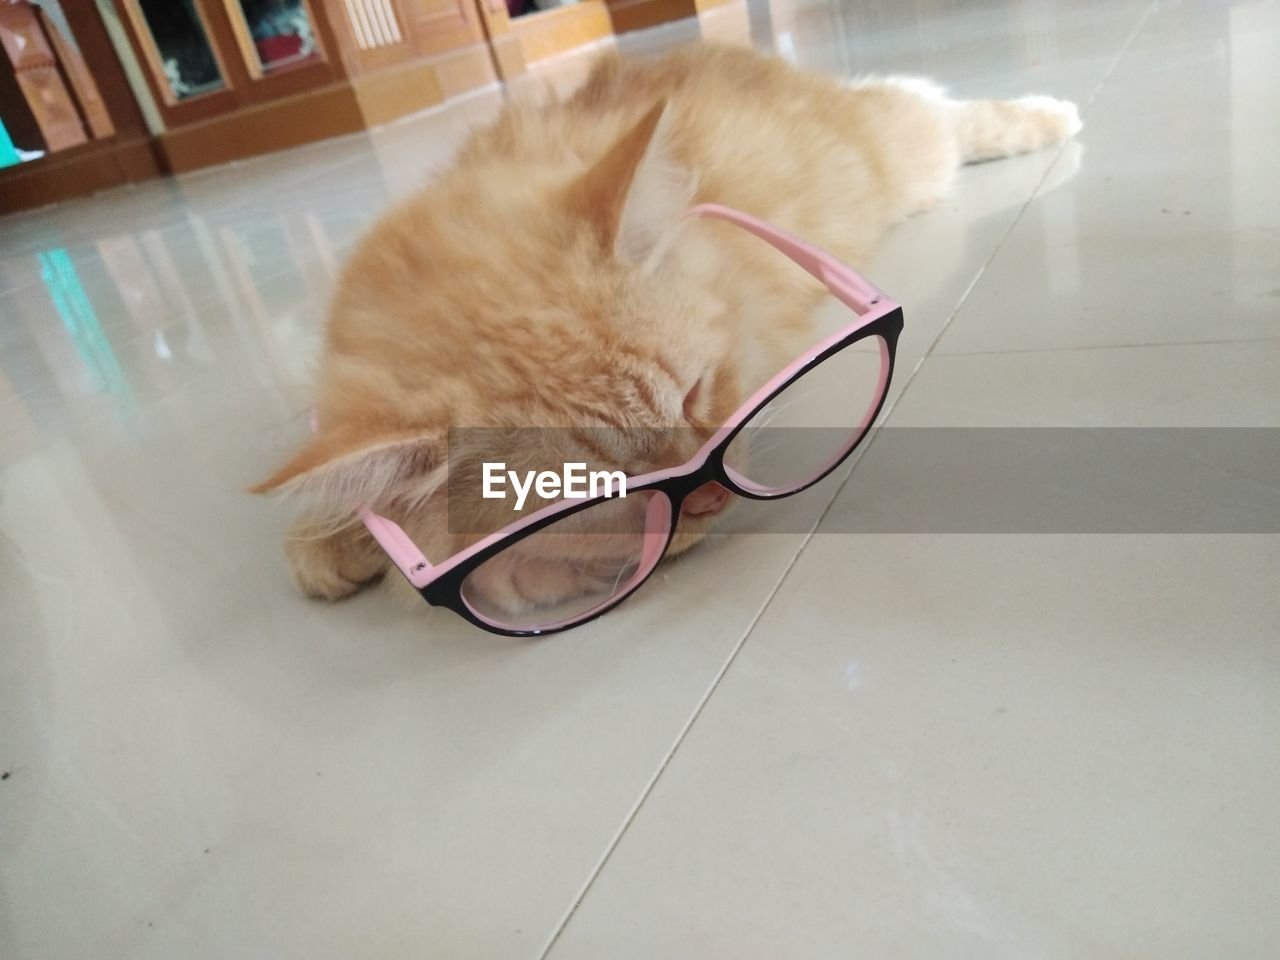 pets, domestic, cat, domestic animals, animal, mammal, domestic cat, animal themes, feline, one animal, vertebrate, indoors, no people, relaxation, flooring, glasses, close-up, eyeglasses, home interior, tiled floor, whisker, ginger cat